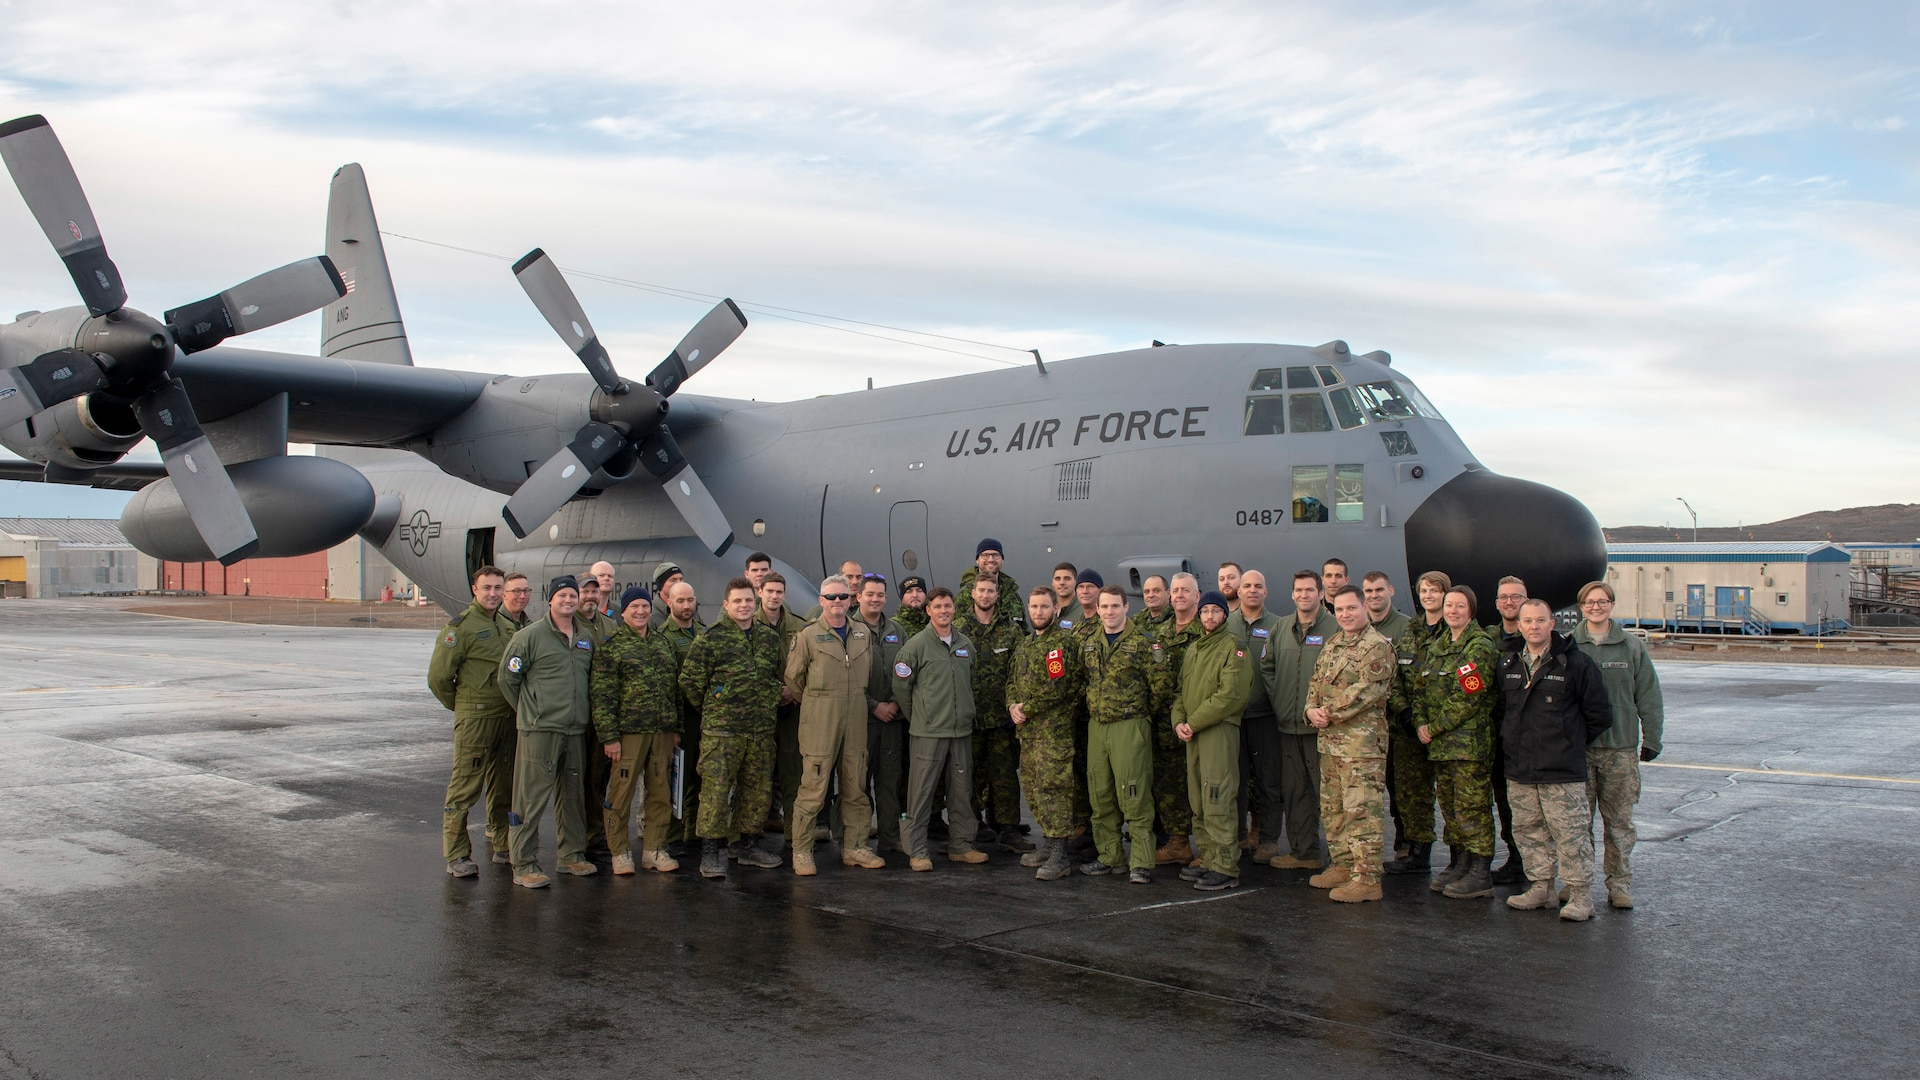 New York Air National Guard Airmen from the 109th Airlift Wing and Royal Canadian Air Force Airmen from 8 Wing in Trenton, Ontario, teamed up to resupply Canadian Forces Station Alert as part of Operation Boxtop. they are shown in front of a New York Air National Guard C-130 at Thule Air Base, Greenland, Oct. 3, 2019.